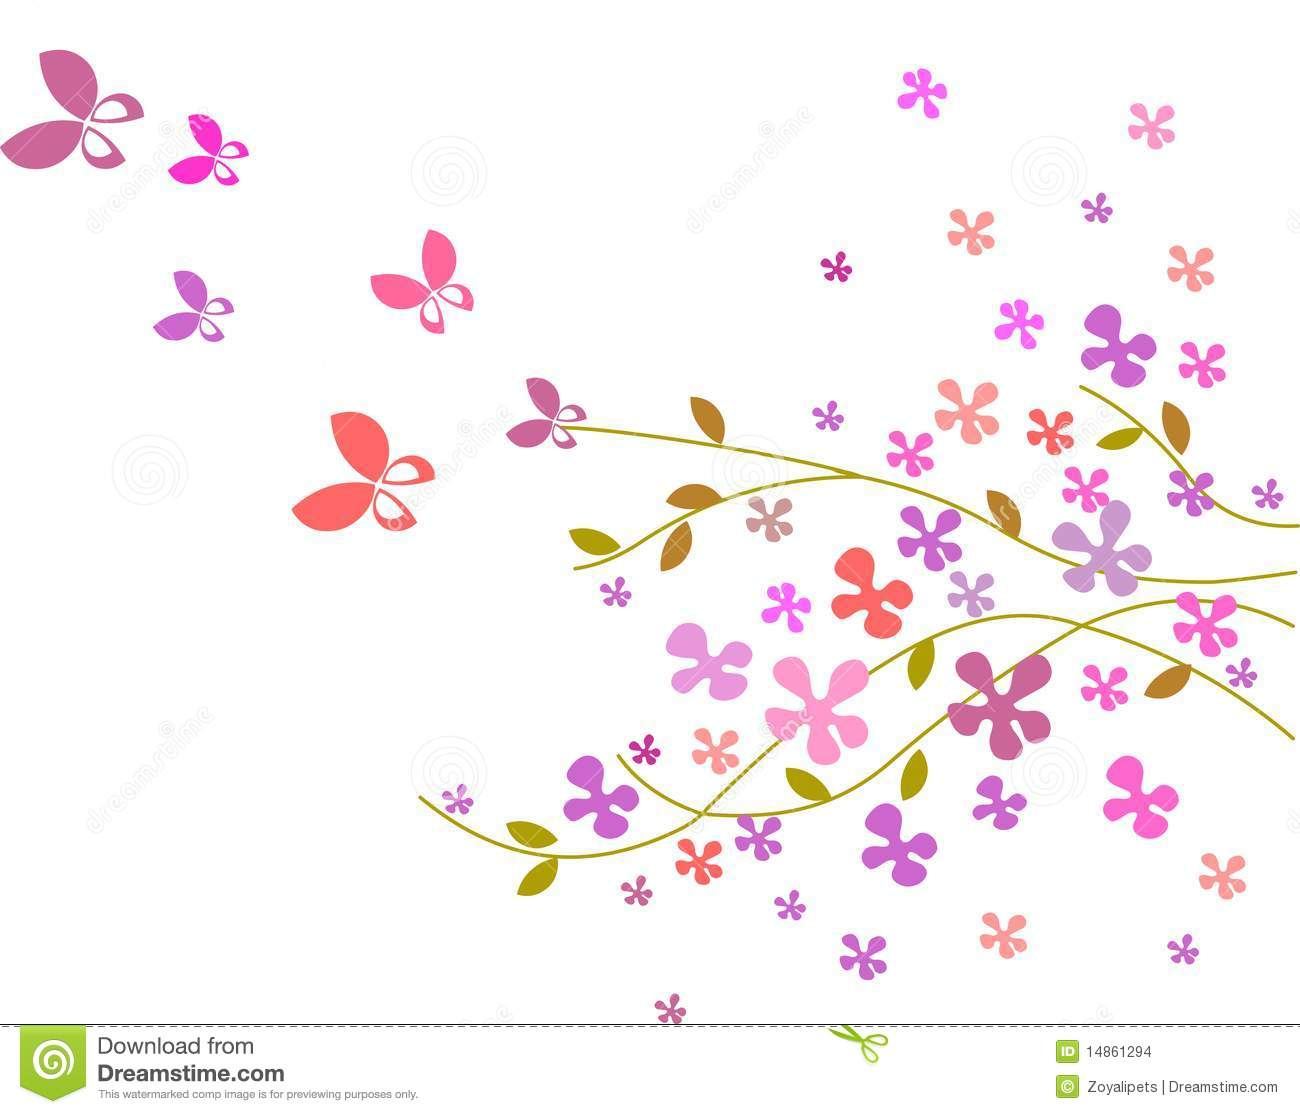 Flower background with butterflies -3